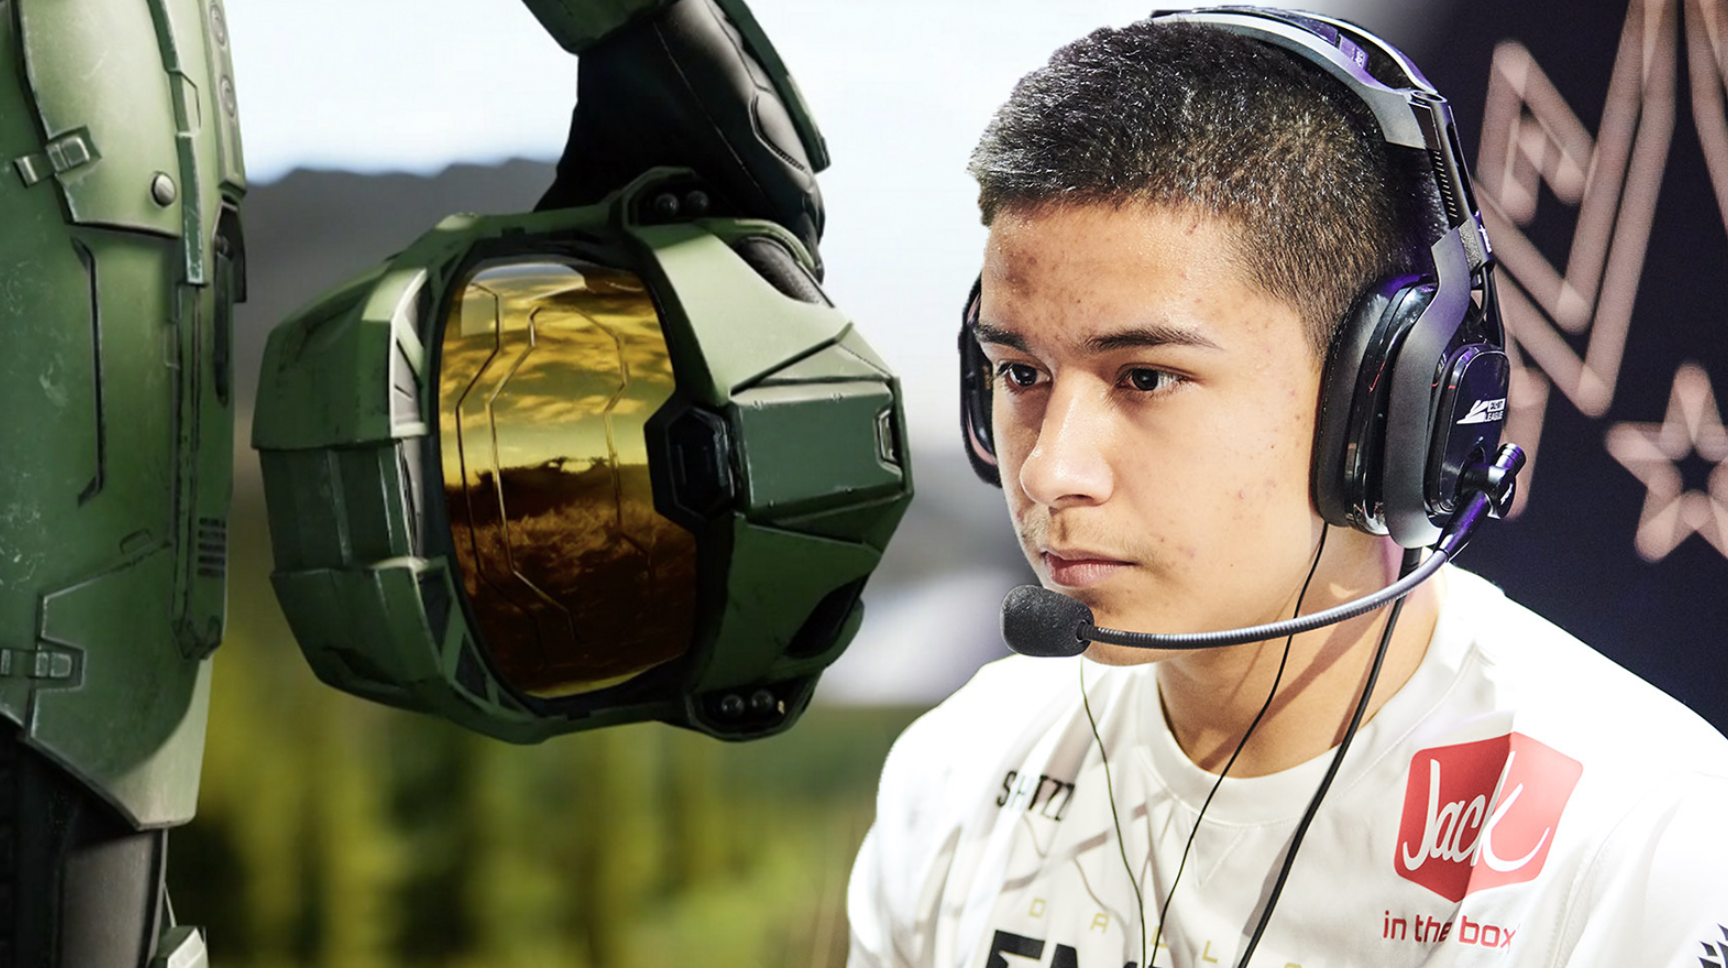 Halo Infinite Master Chief helmet / Call of Duty League pro Shotzzy competing